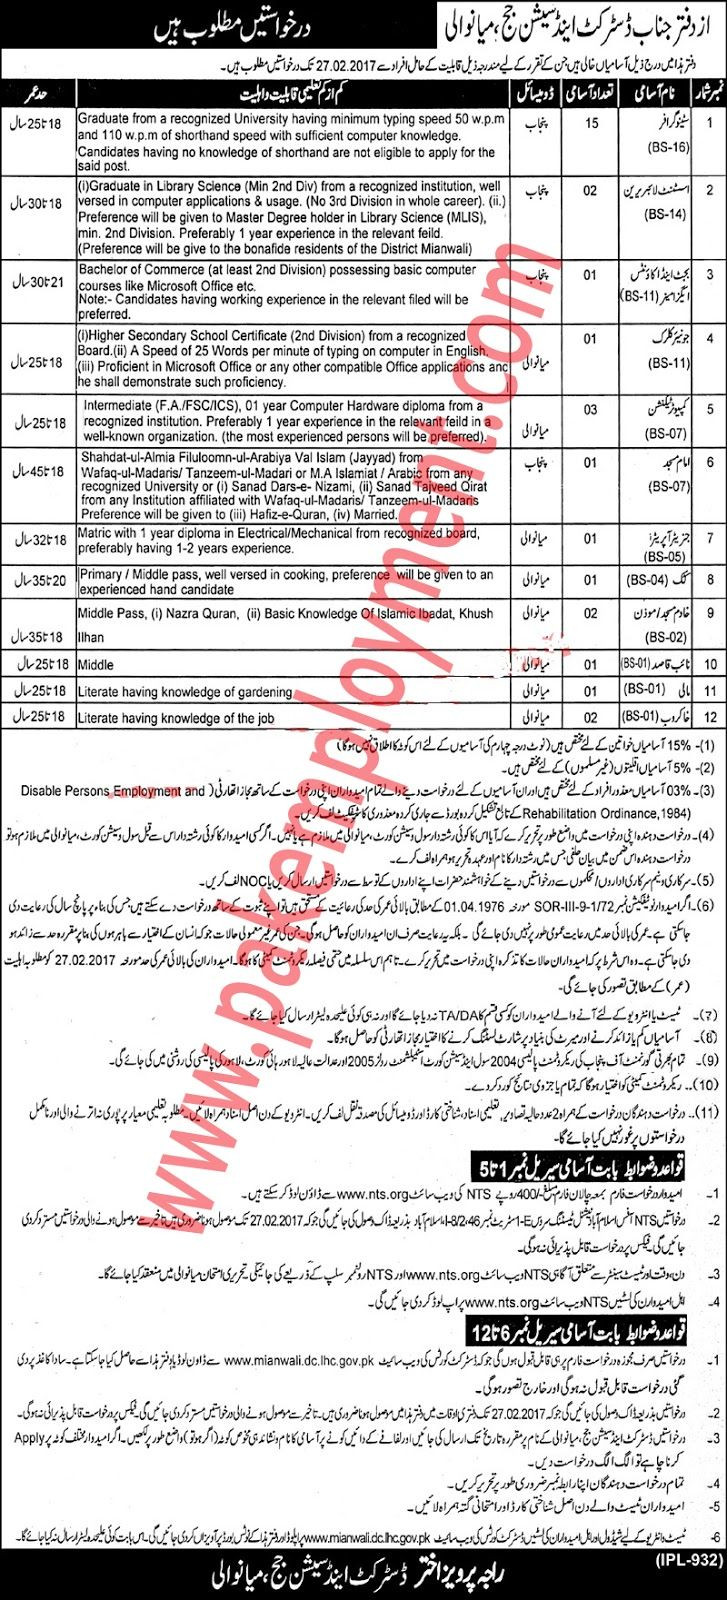 Session Court Jobs In Pakistan